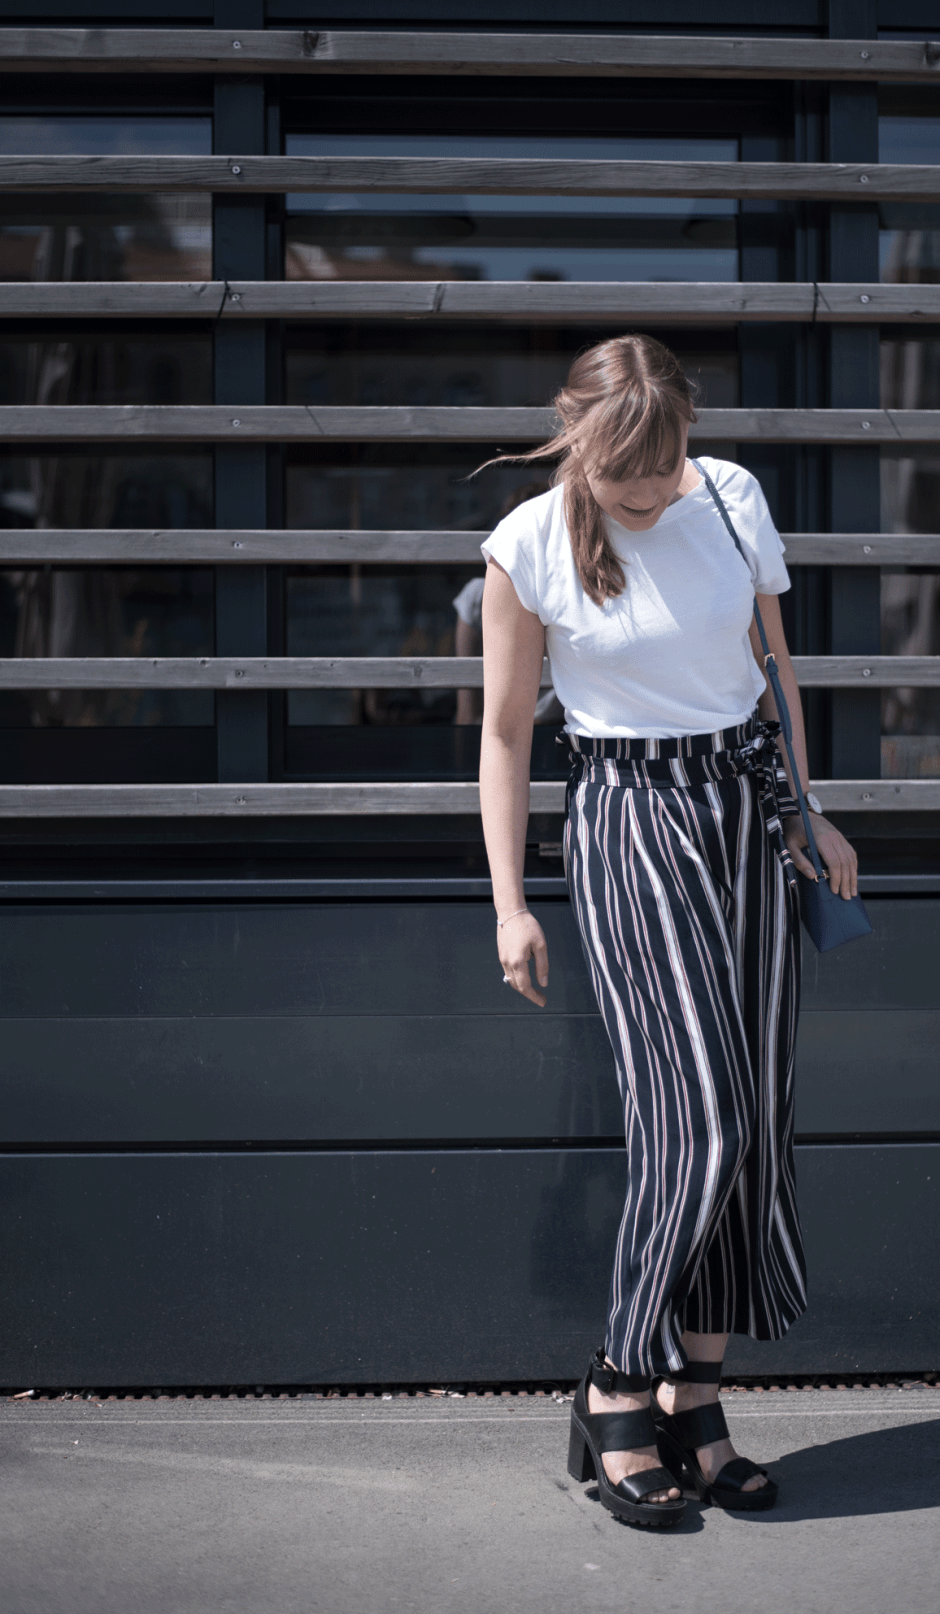 Stylesandbox-blog-your-style-white-shirt-culottes-stripes-spring-outfit-lifestyleblog-fashionblog-travelblog-vienna-3